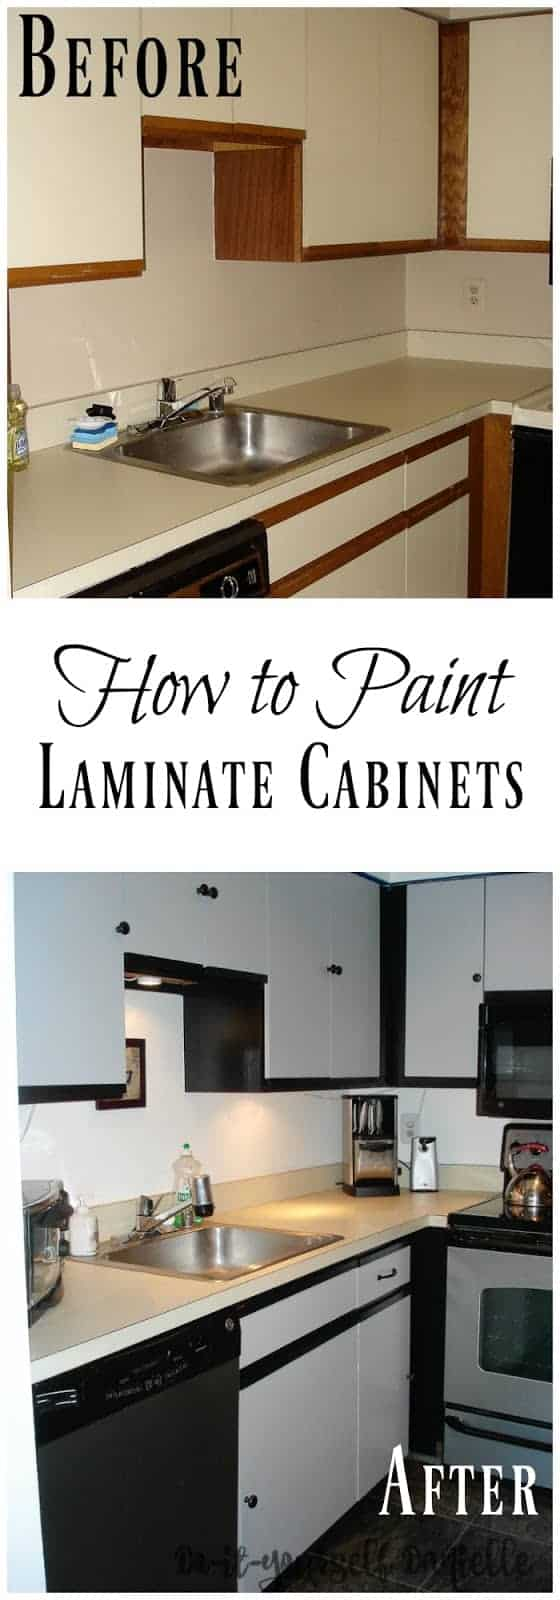 Affordable small kitchen update with paint, primer, and new cabinet hardware for laminate cabinets.